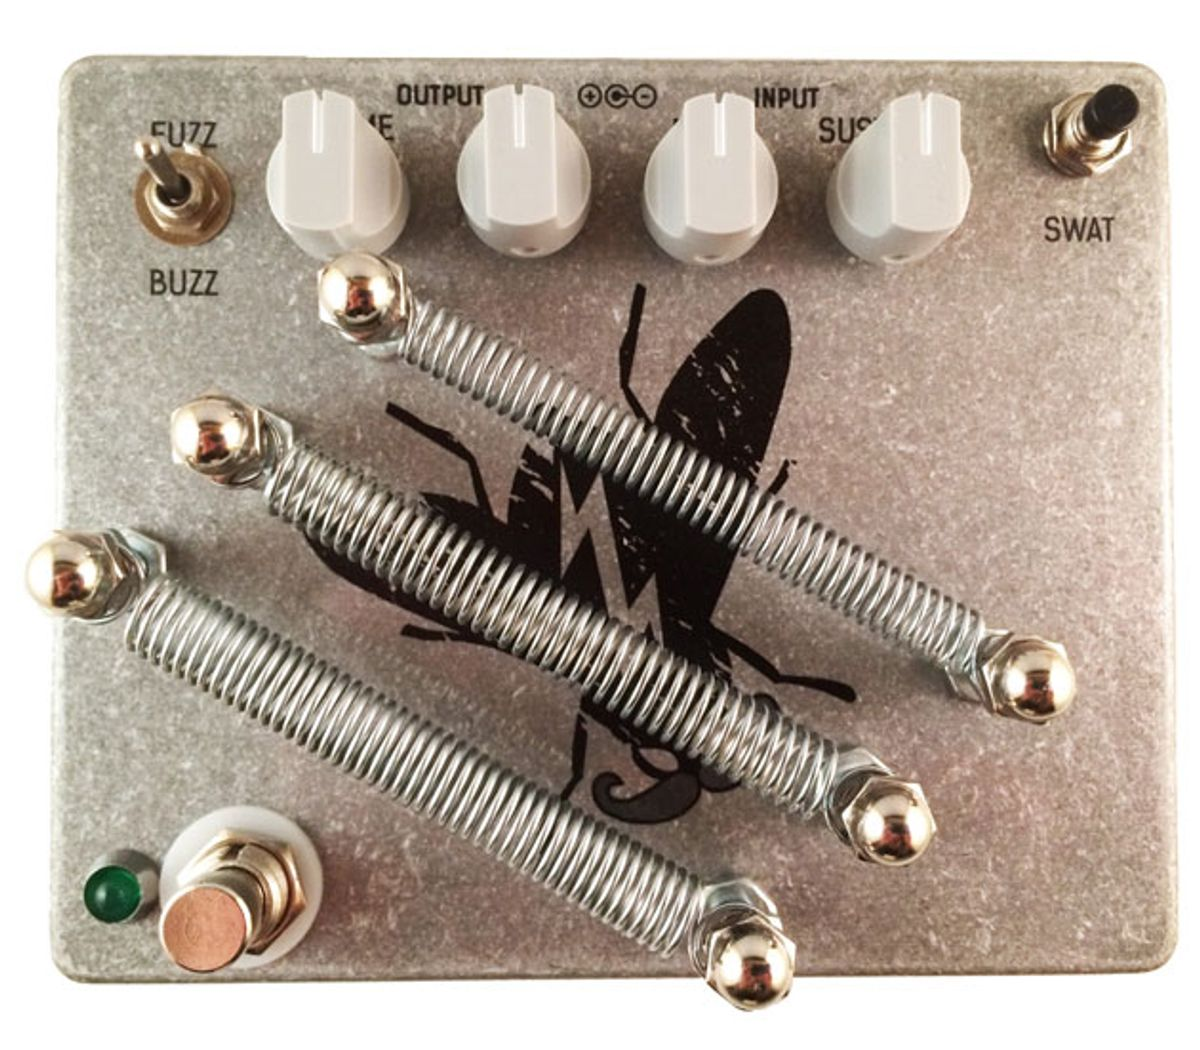 Fuzzrocious Pedals Introduces the Greyfly